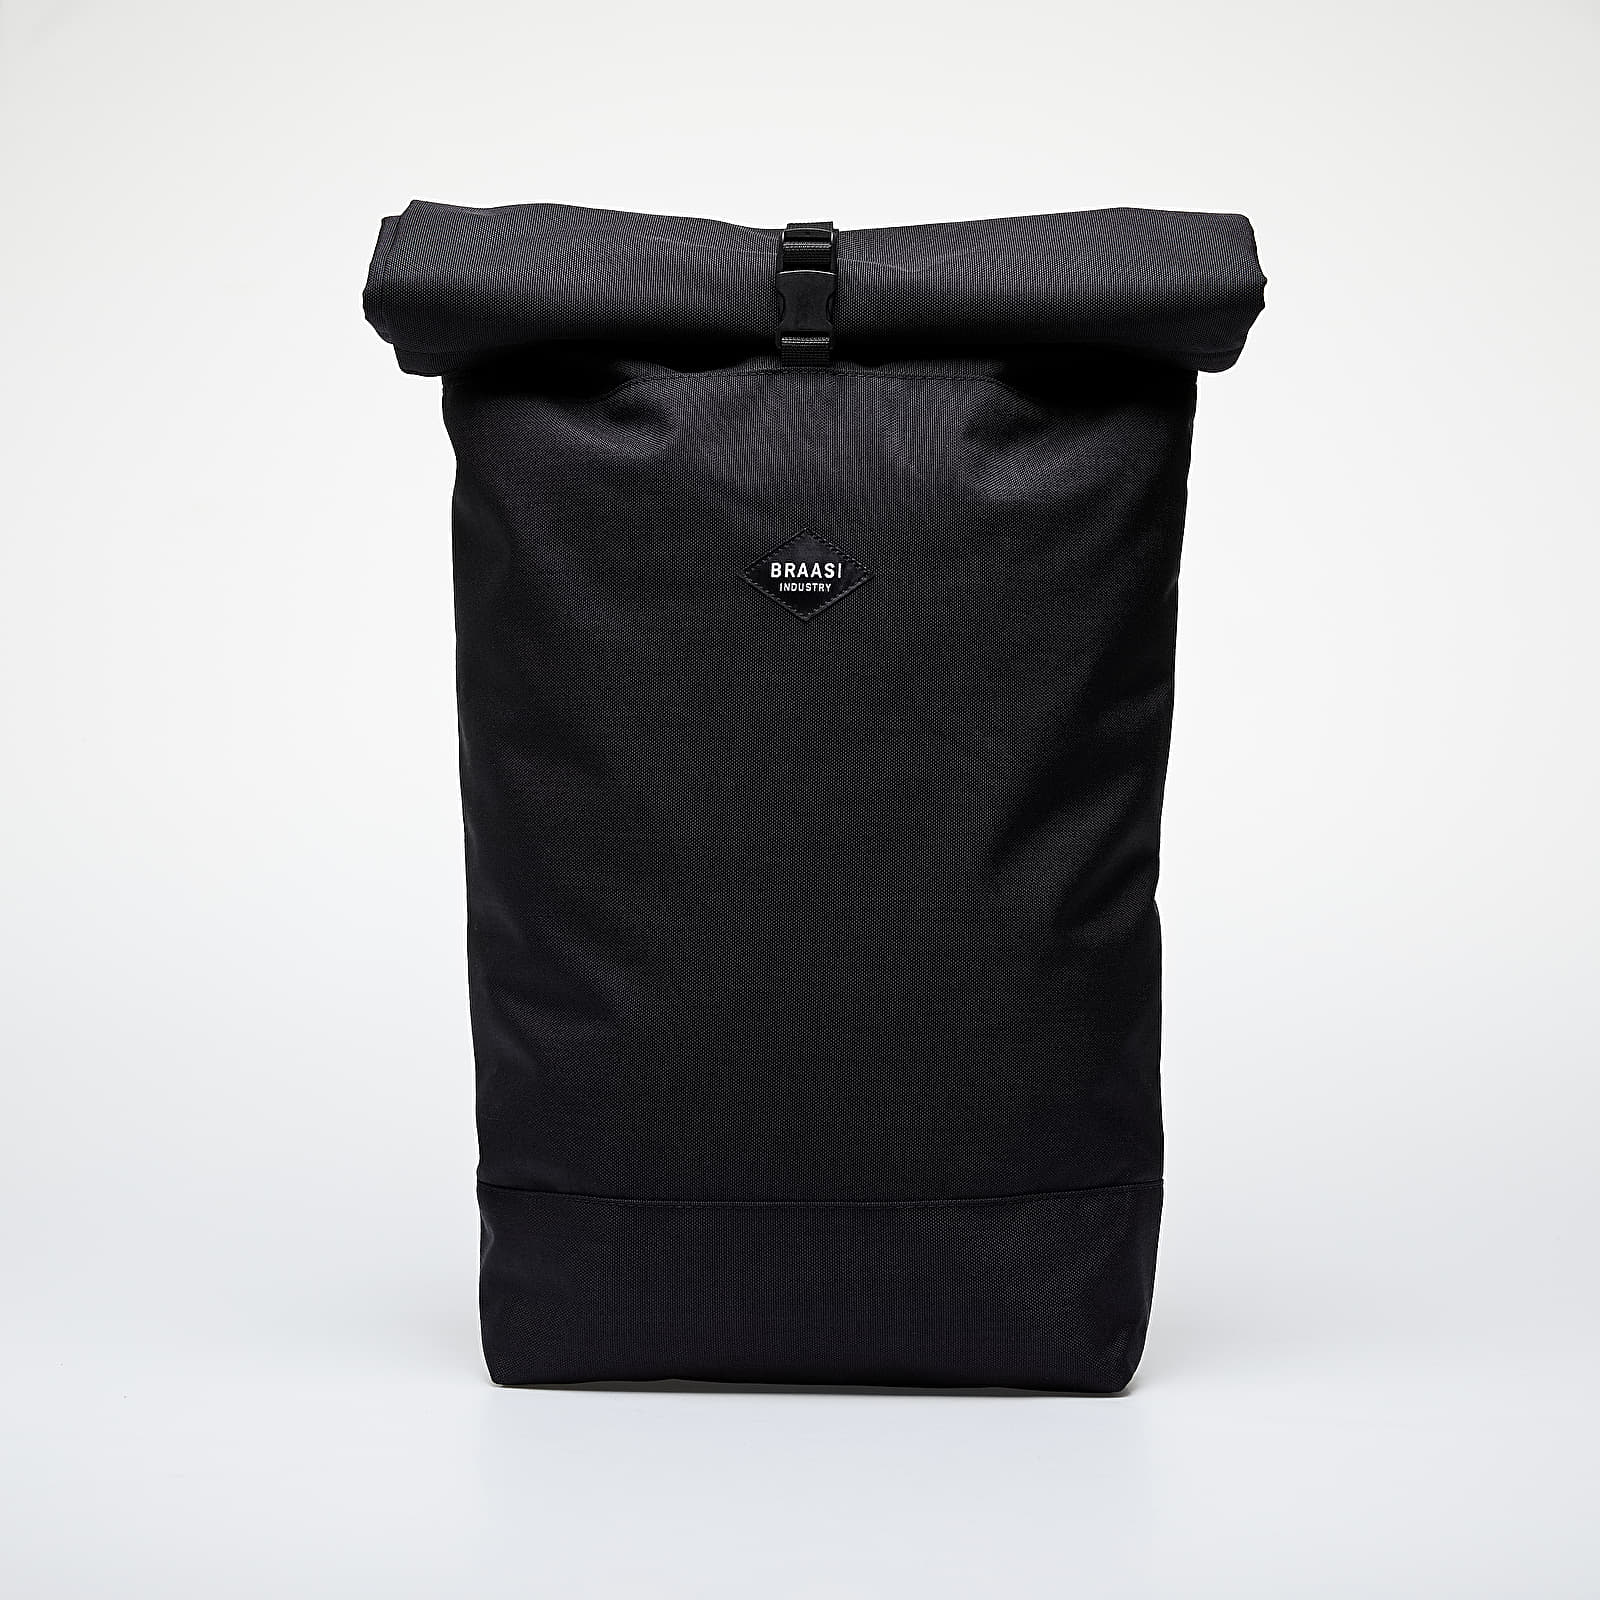 Braasi Industry Rolltop Basic Backpack